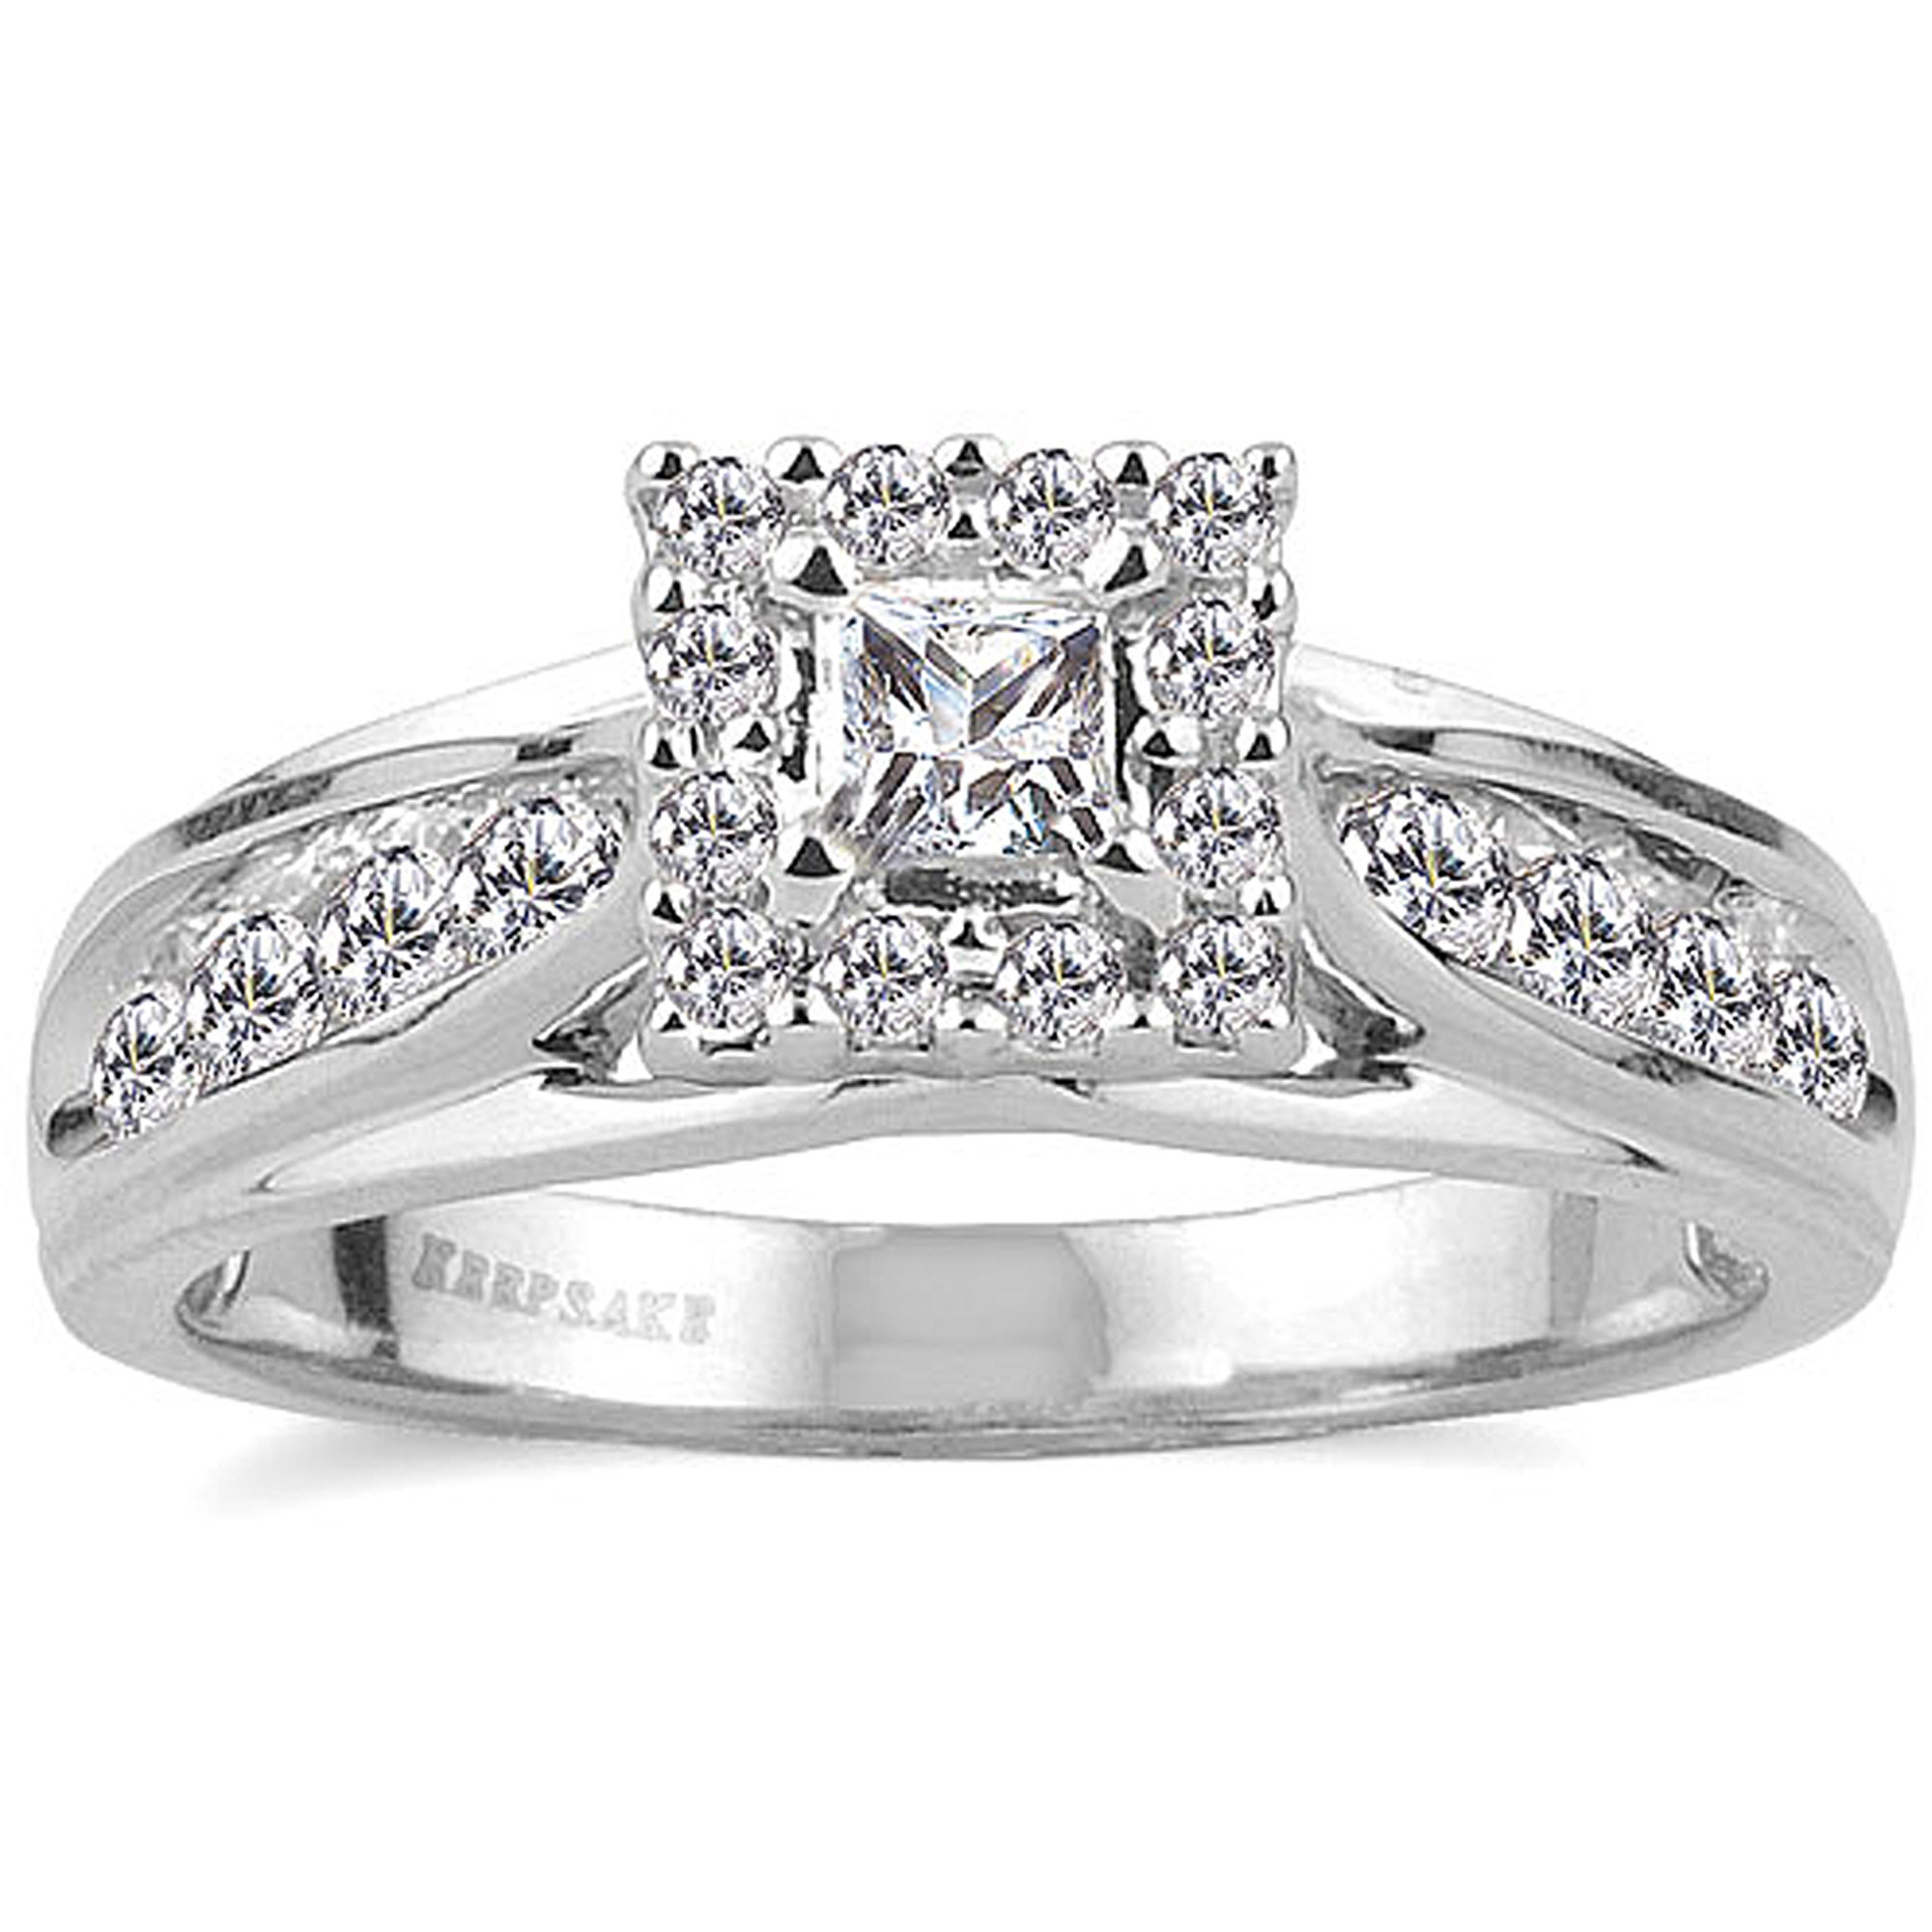 keepsake melody 12 carat tw certified diamond 10kt white gold ring walmartcom - Wedding Rings From Walmart